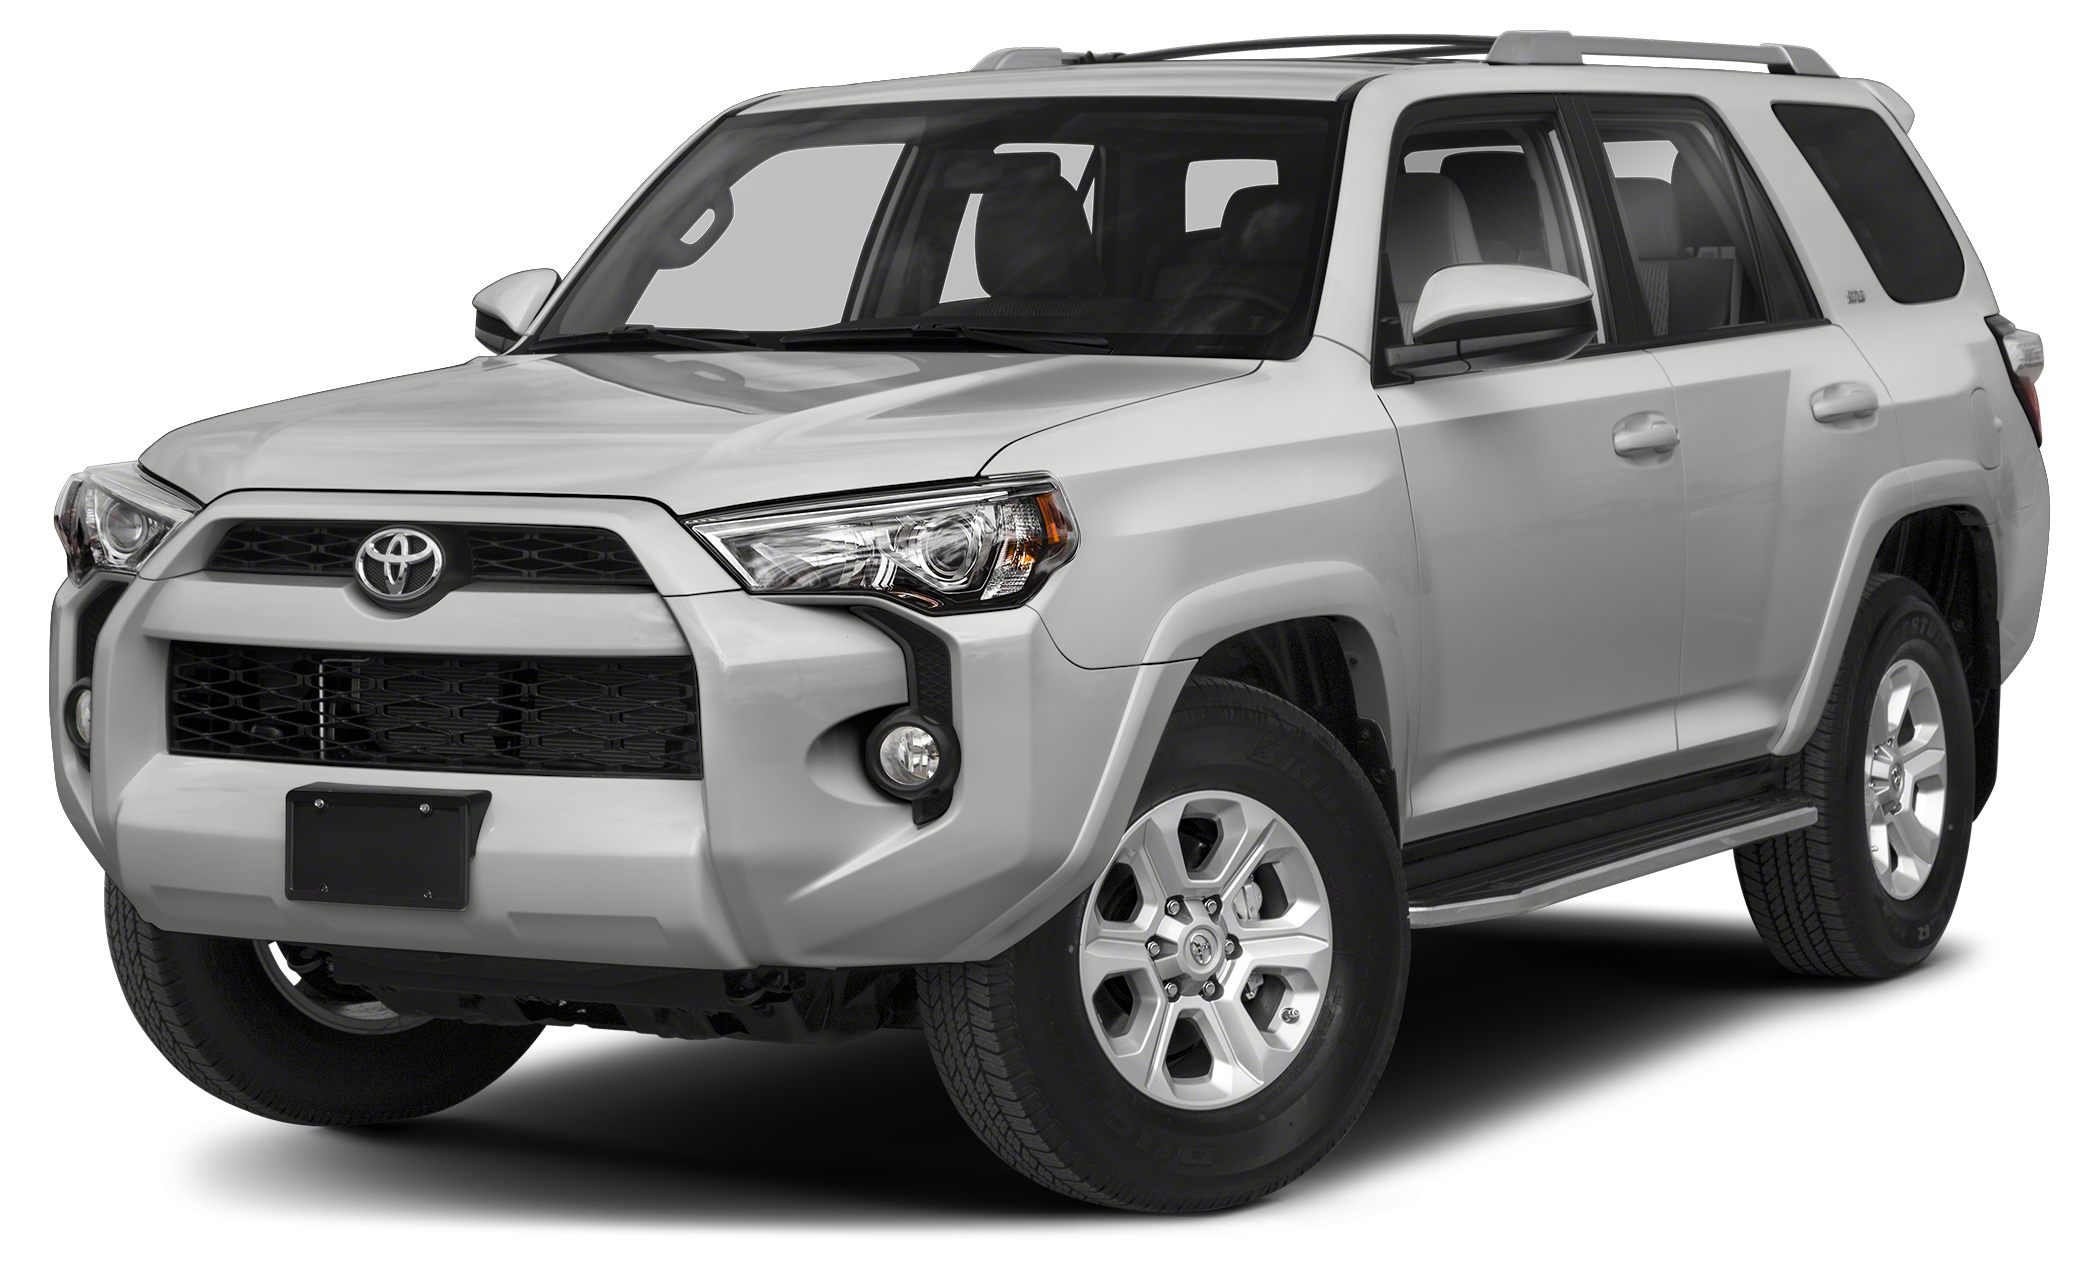 2017 Toyota 4Runner SR5 Were here to make your shopping experience as pleasant and hassle free as